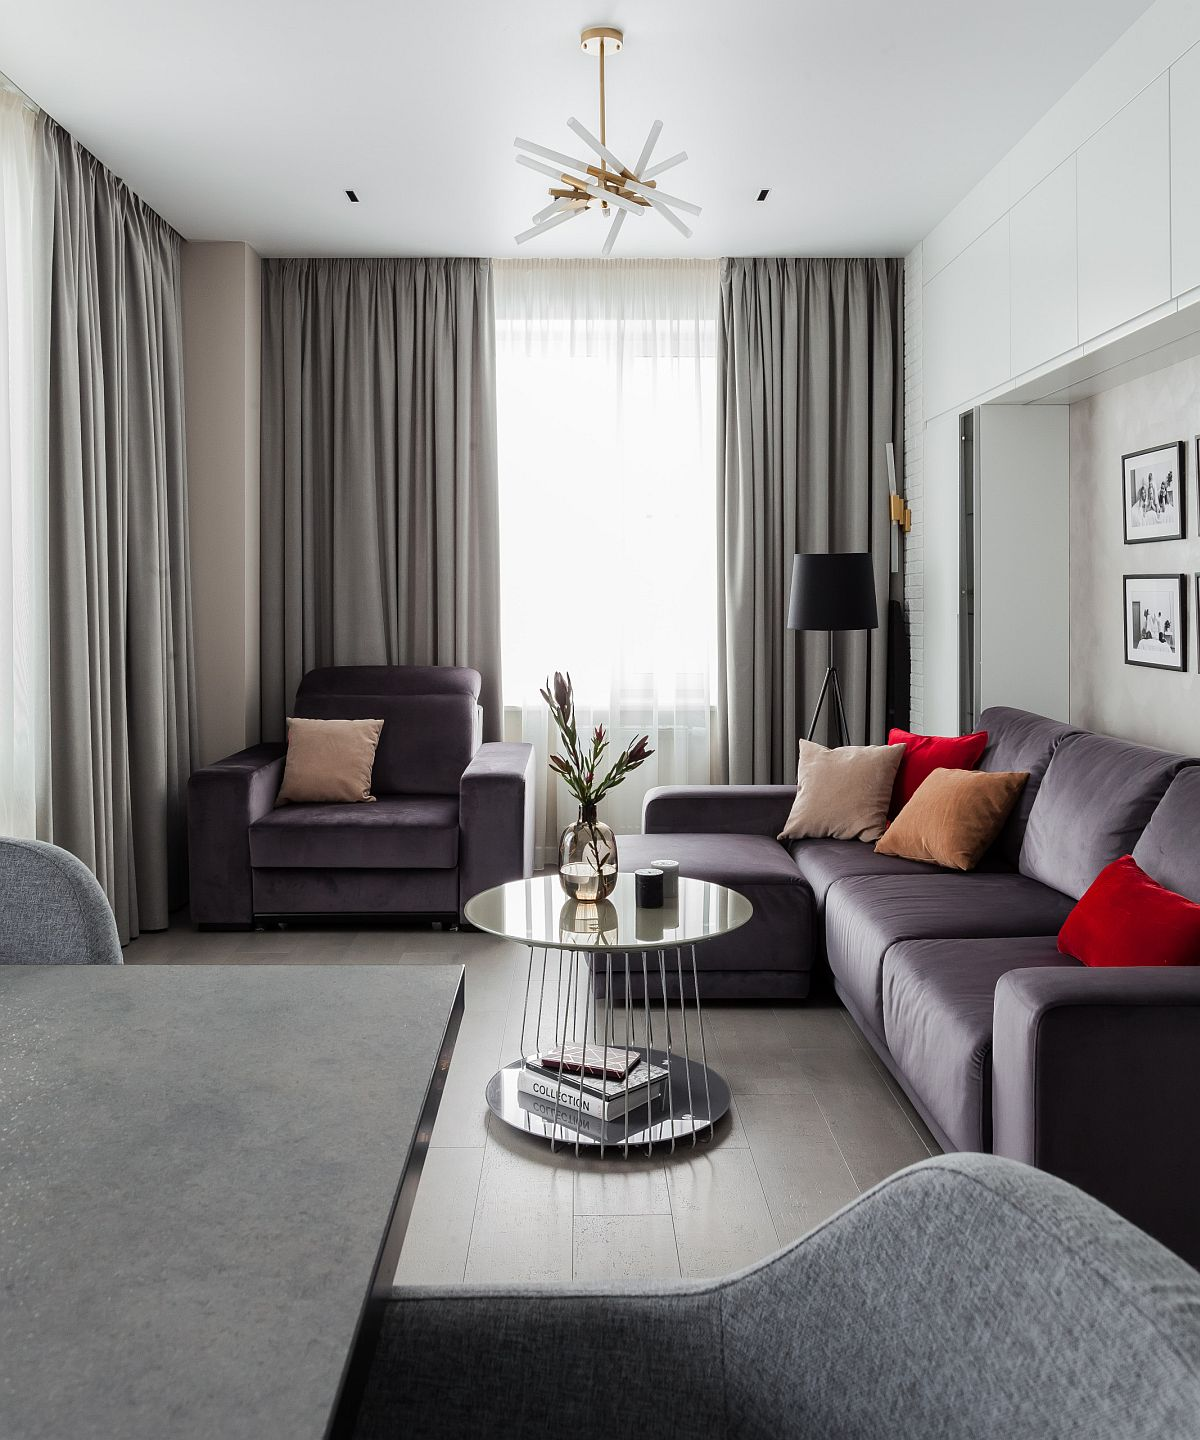 Sectional in gray adds to the color scheme of the tiny living room with red accents